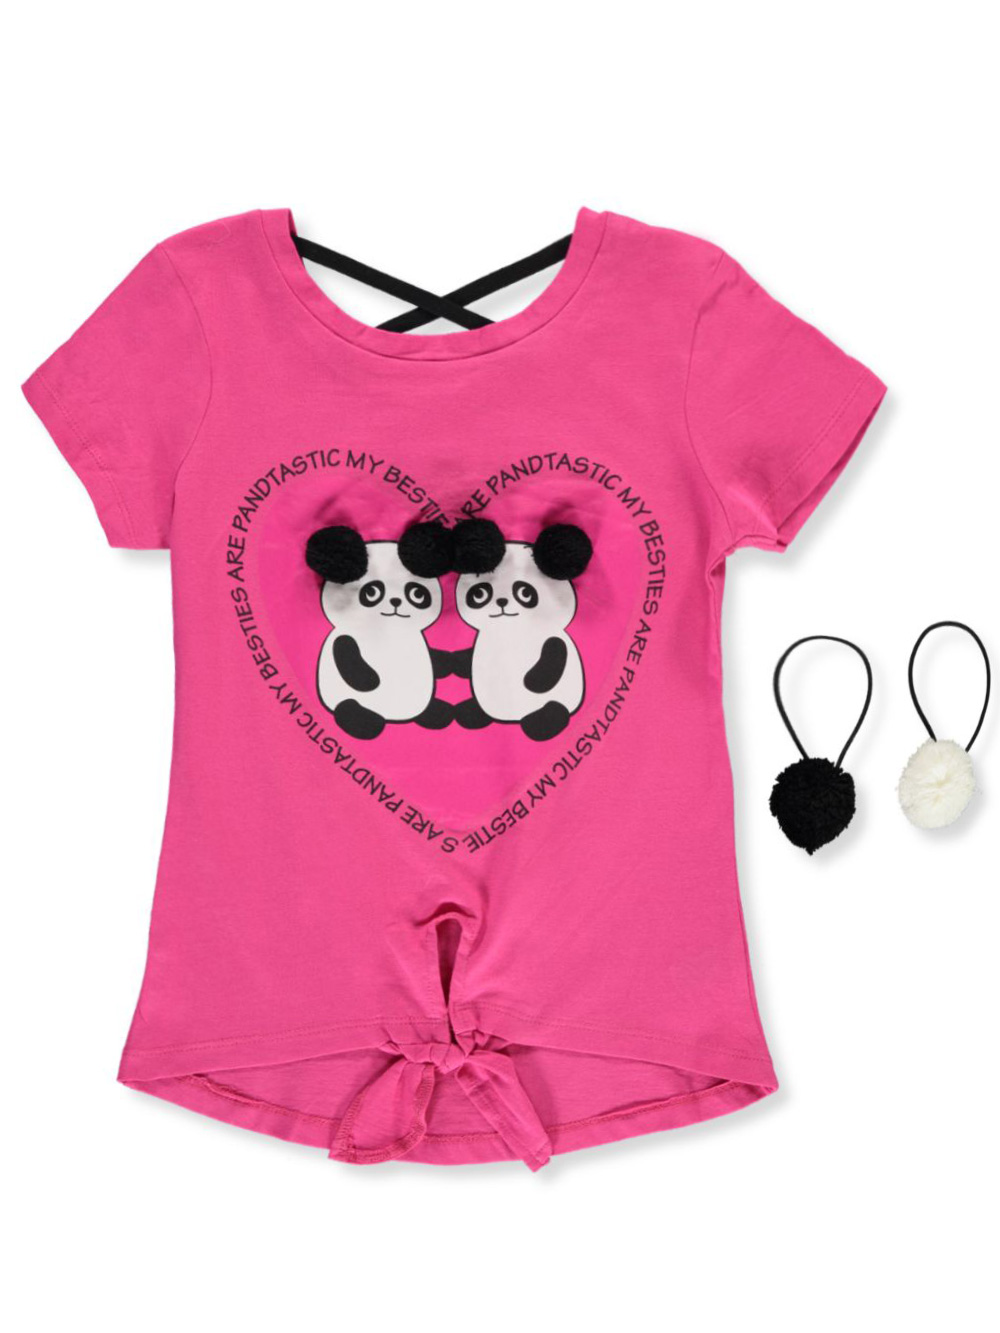 Girls Fuchsia Fashion Tops